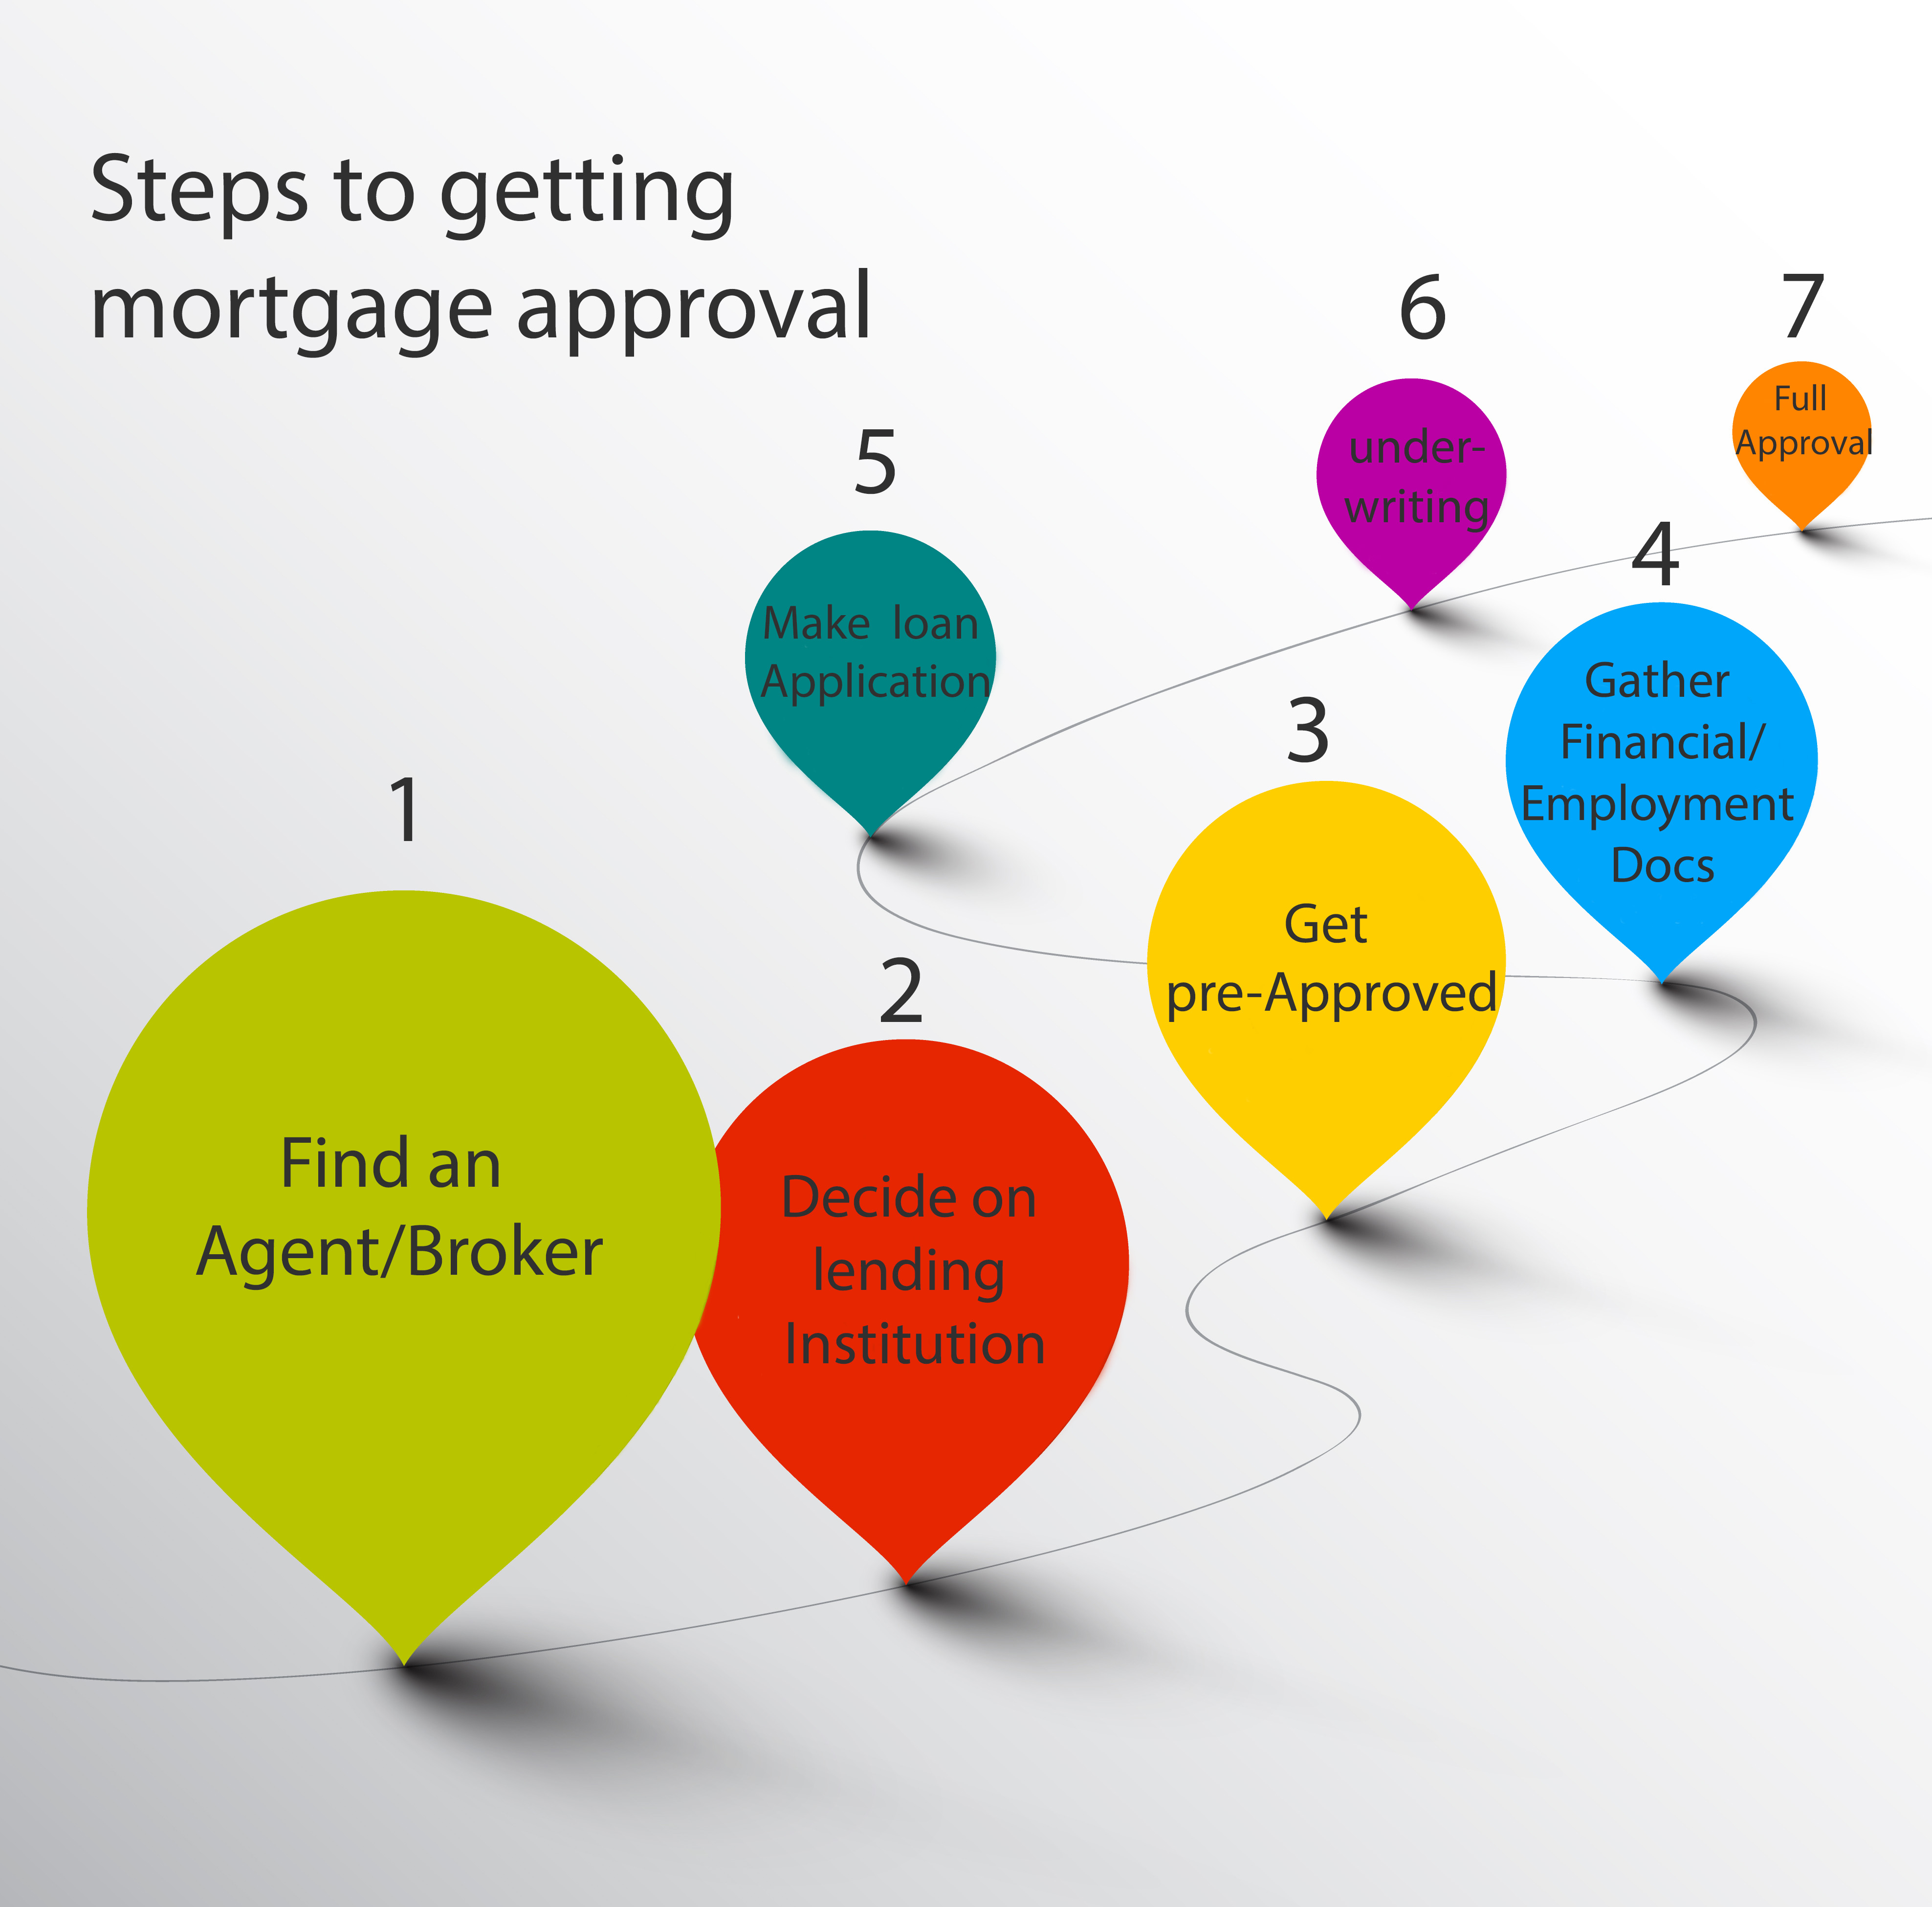 Steps to getting mortgage approval